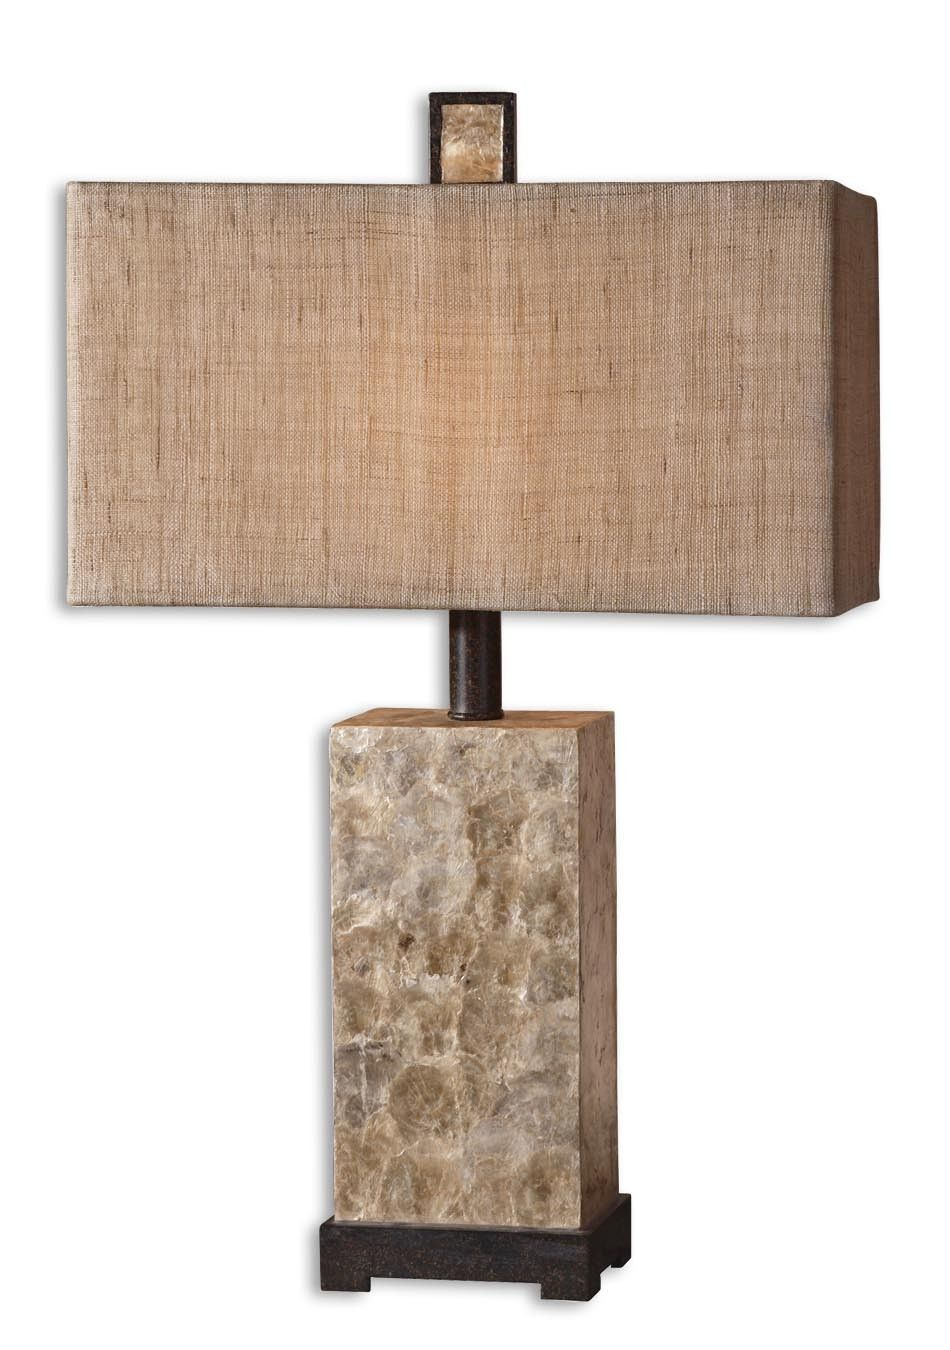 Rustic Mother Of Pearl Table Lamp with natural burlap shade.